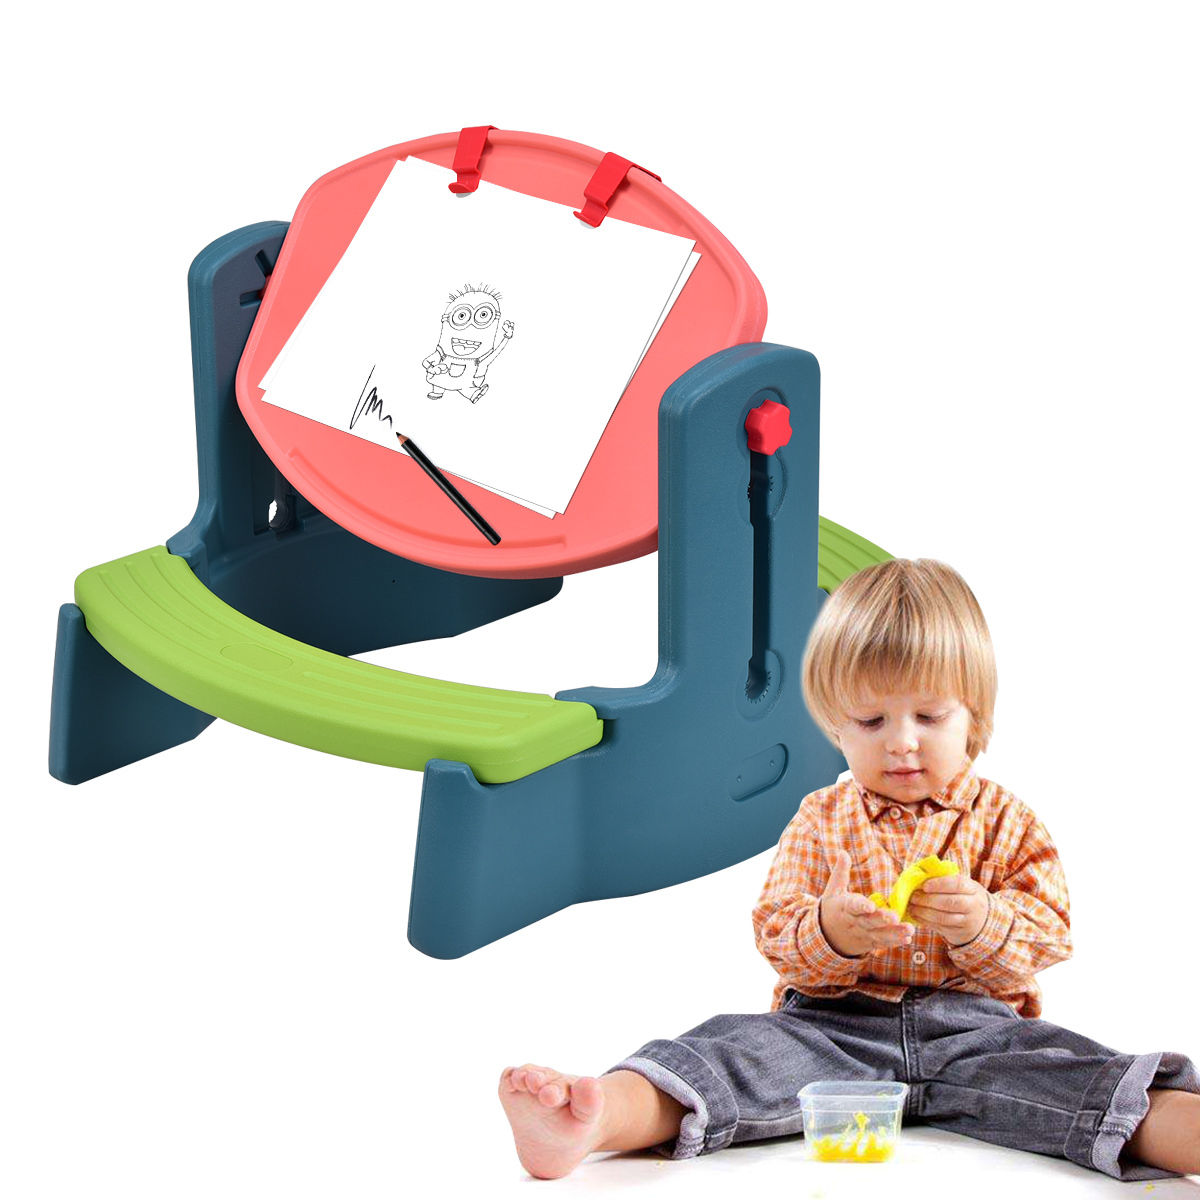 Costway Plastic Children Kids Drawing Table Chair Set Height Adjustable Colorful Play